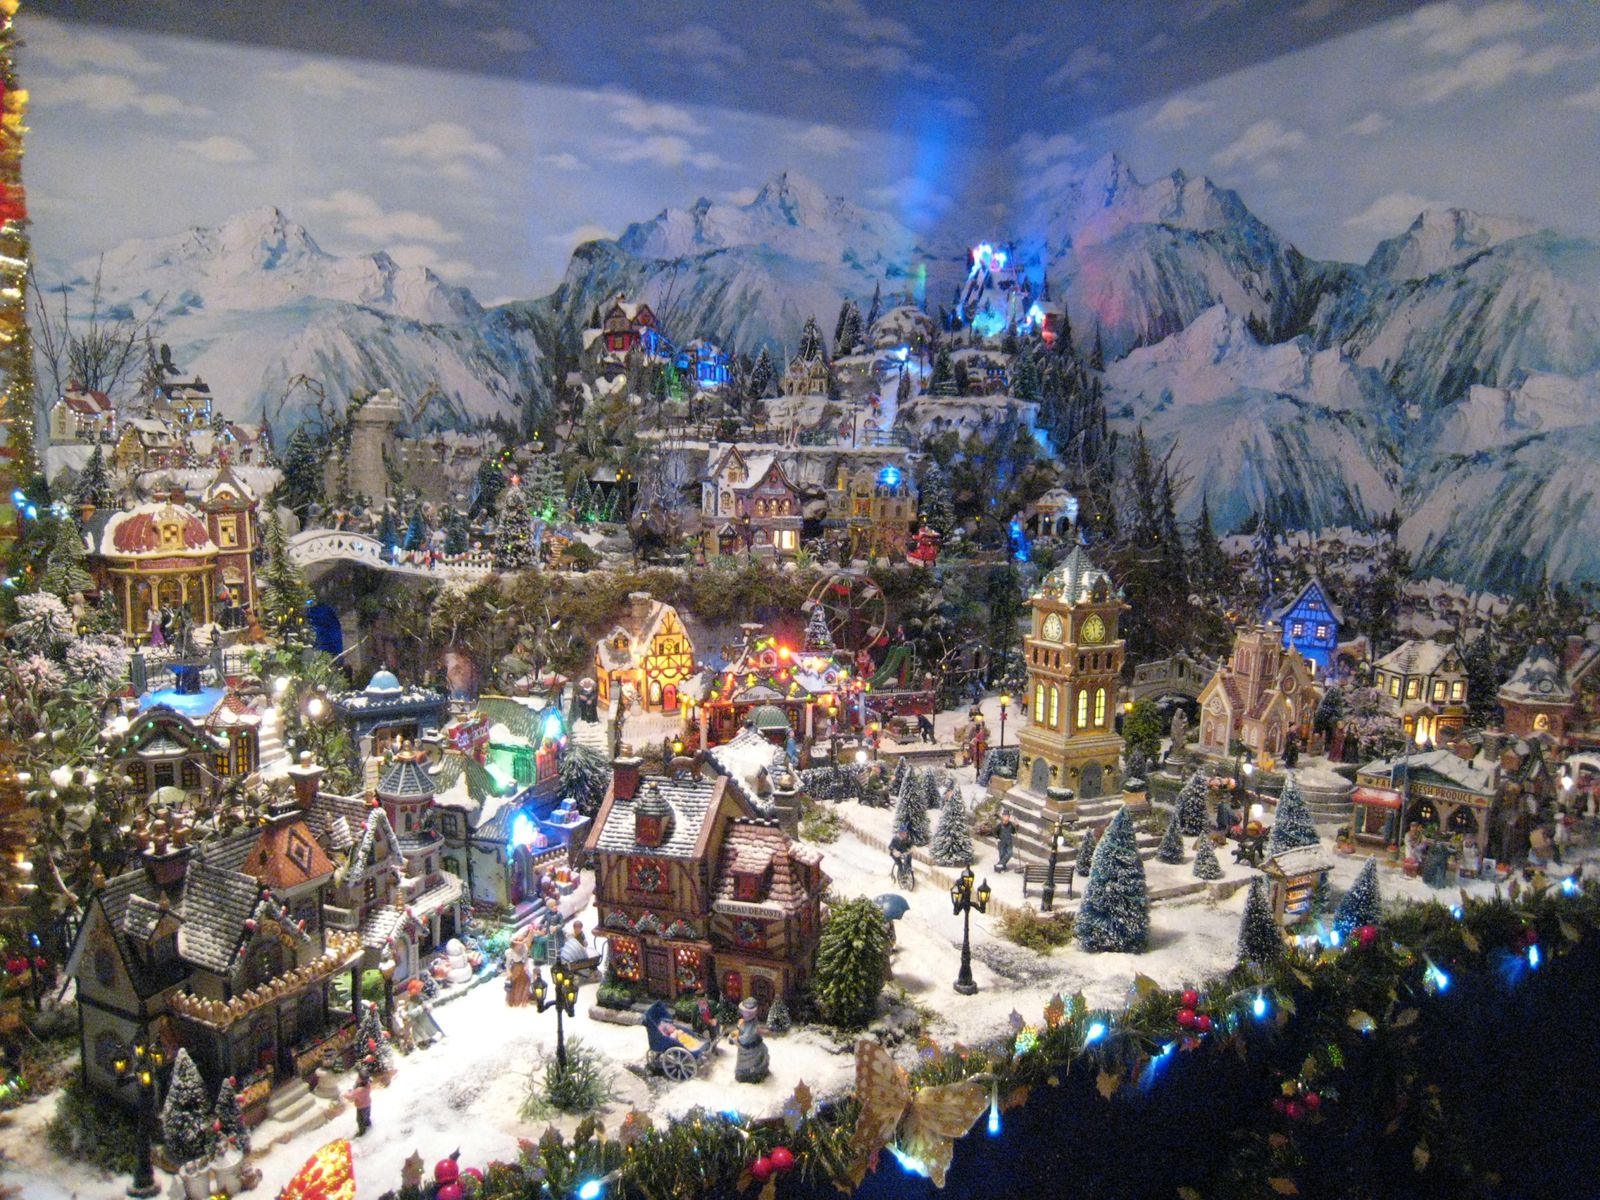 #867045 Decoration De Noel Village Miniature 6123 décoration de noel village lumineux 1600x1200 px @ aertt.com